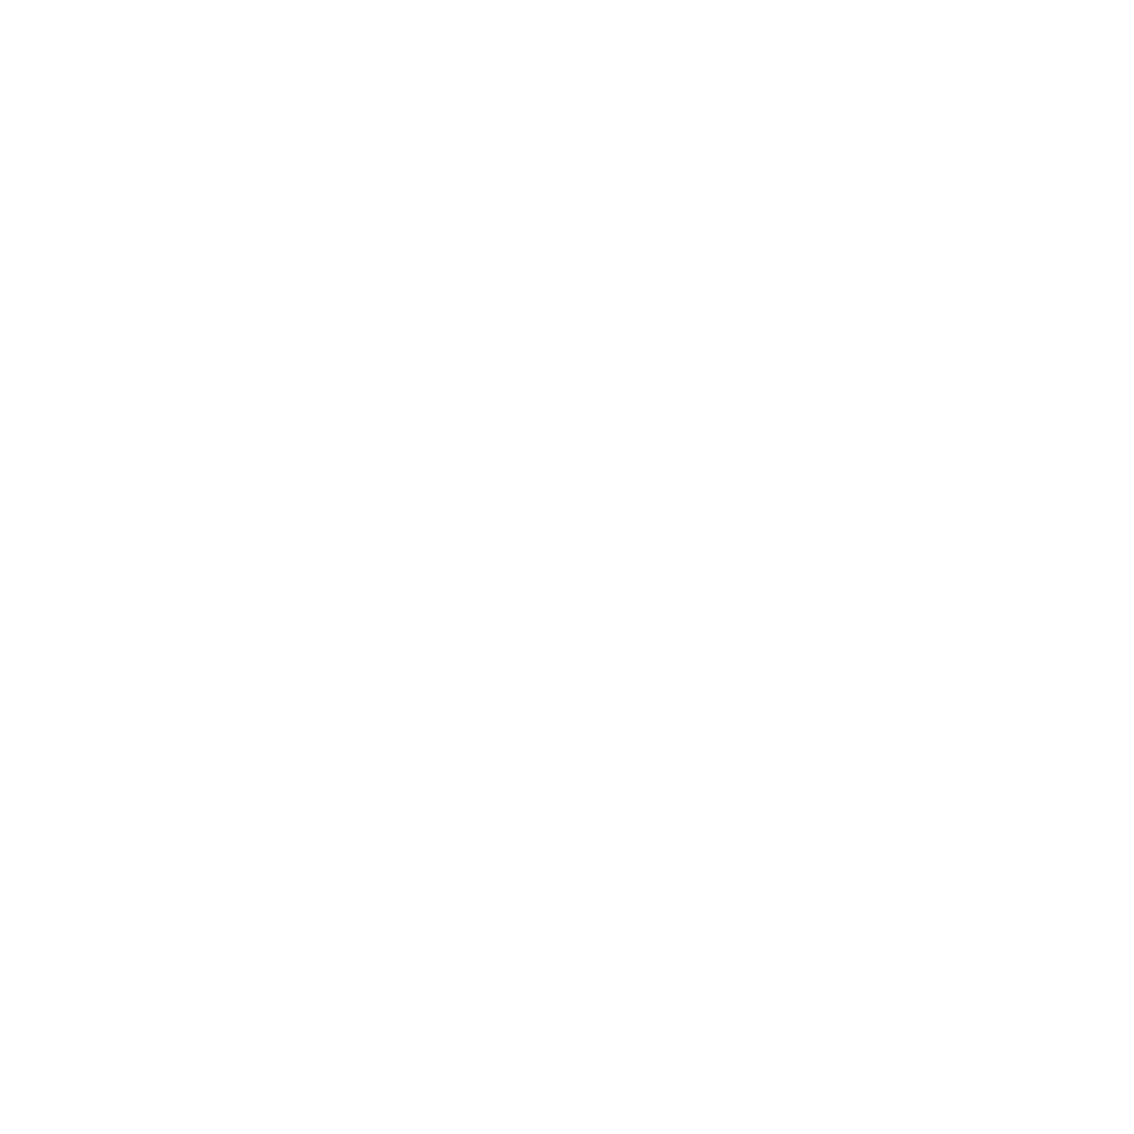 Culinair Fashion & Style Event